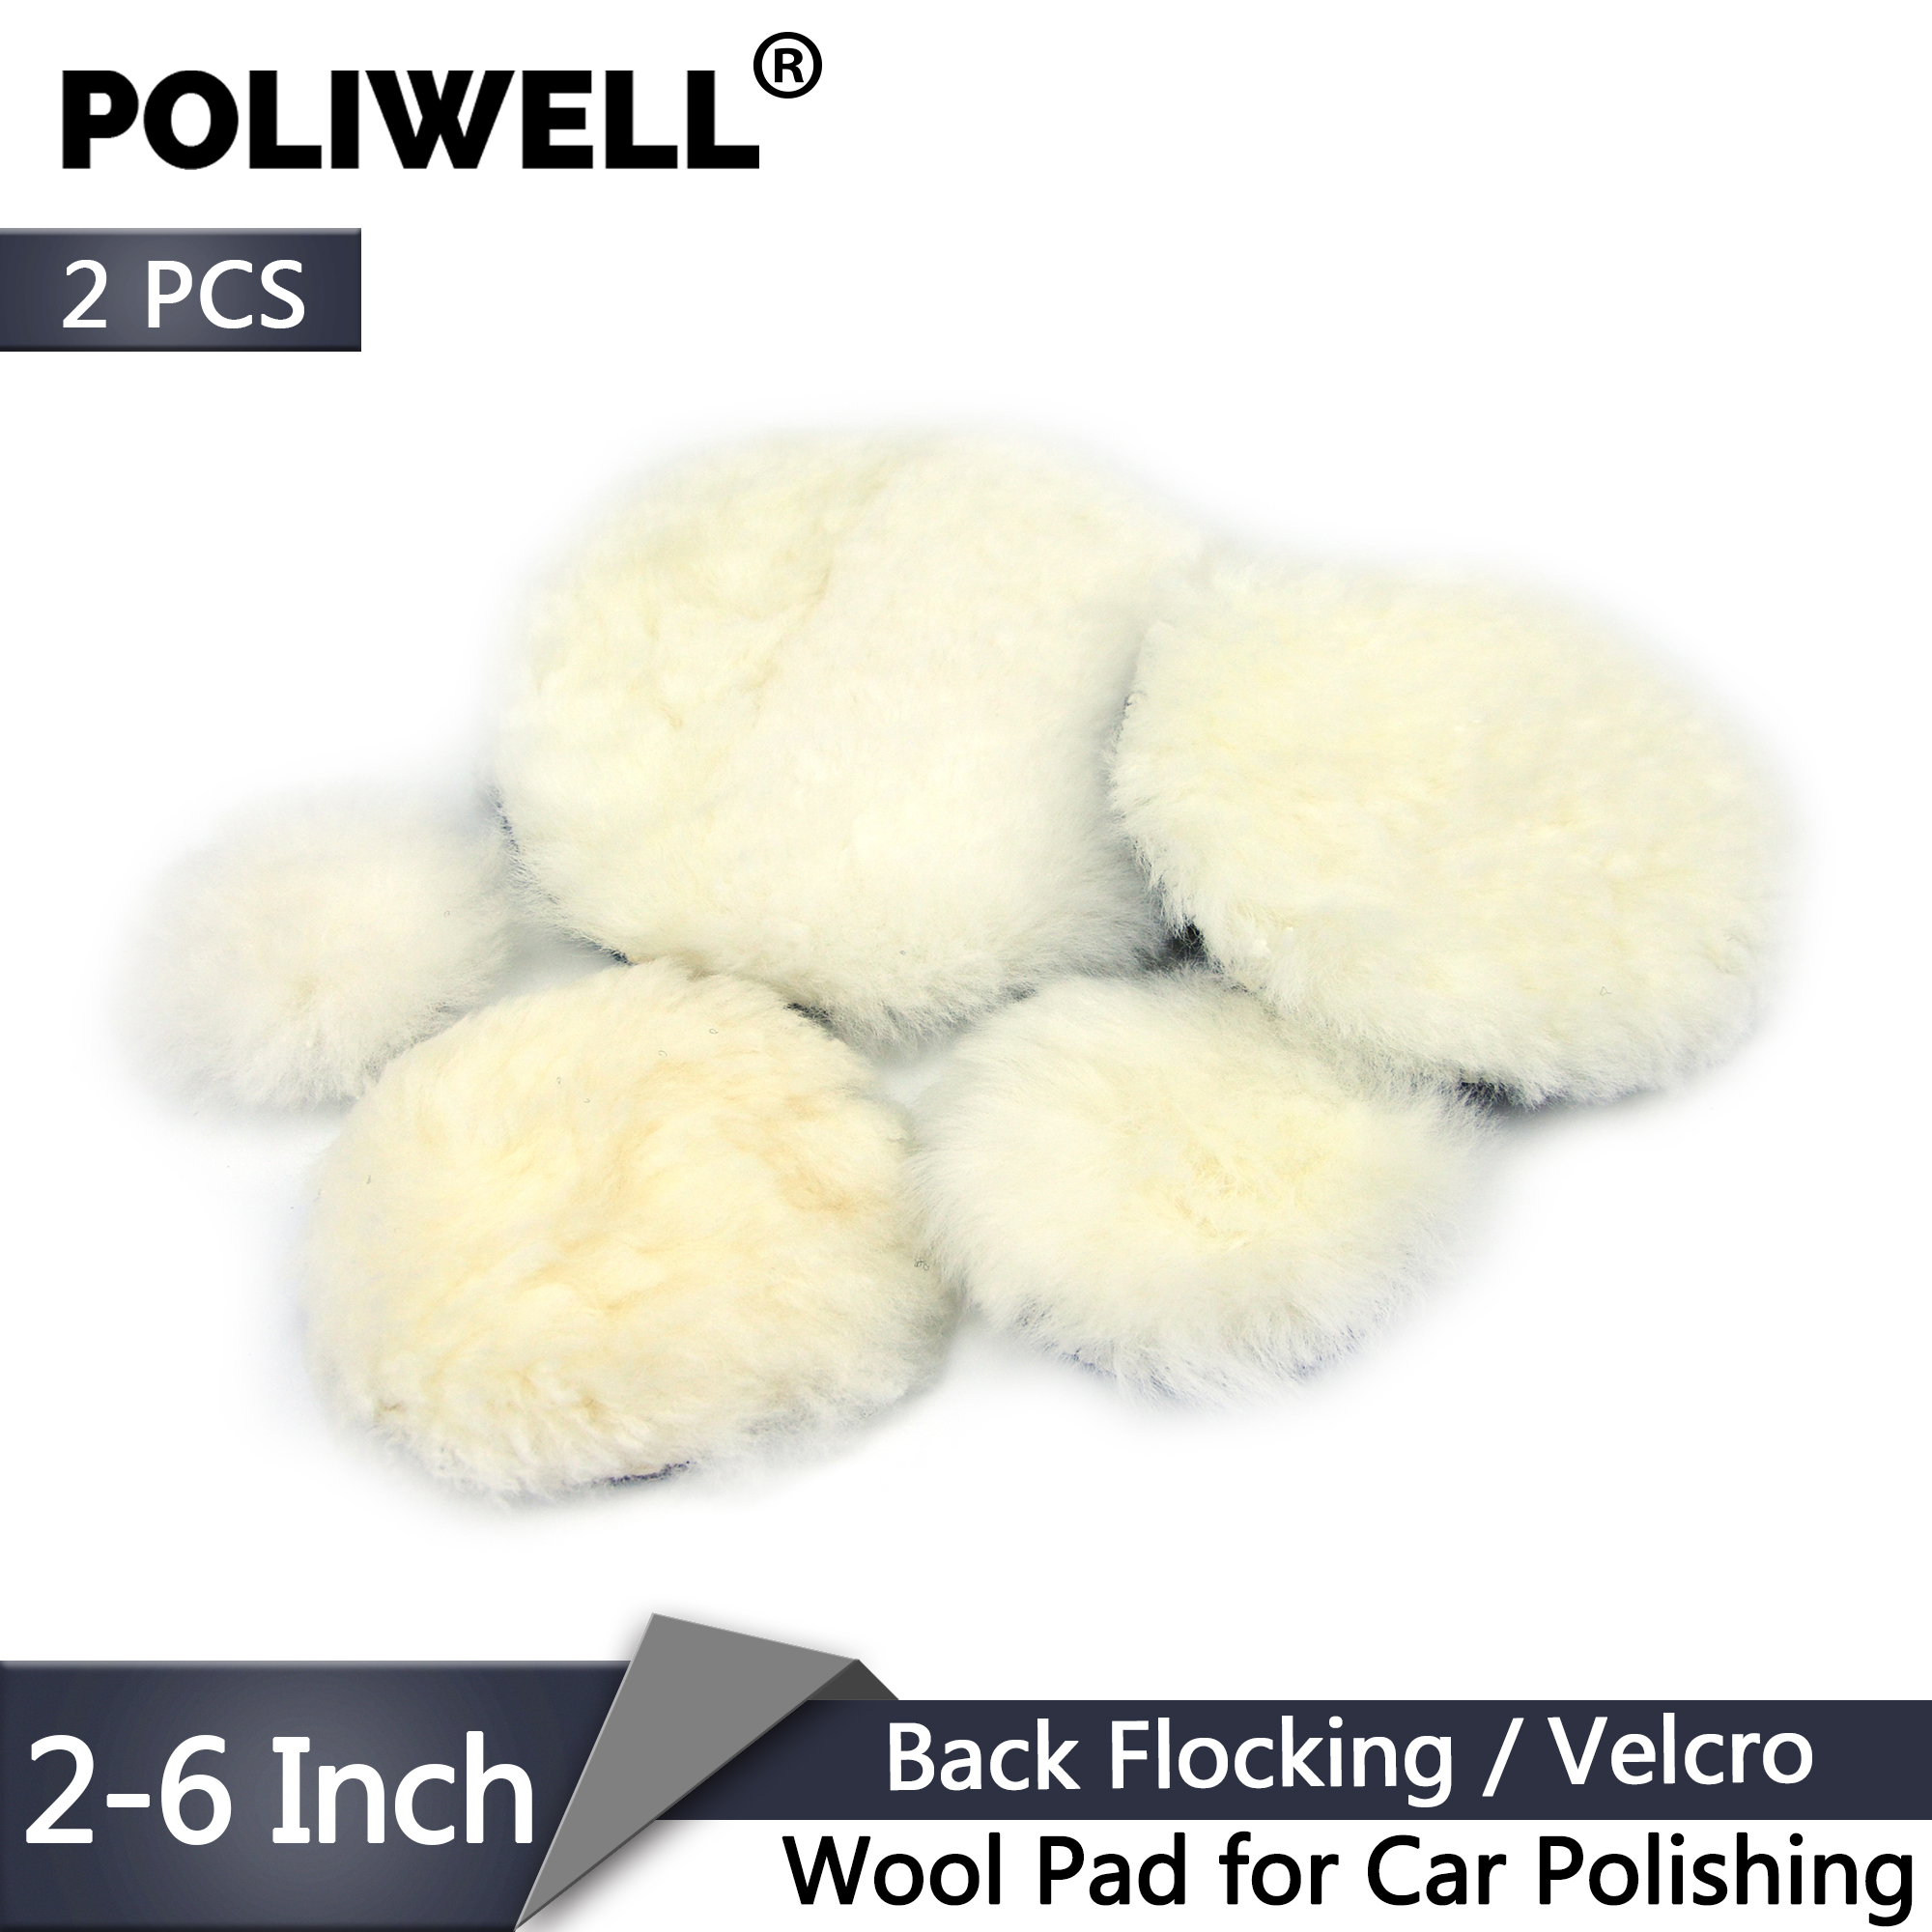 POLIWELL 2Pcs 2/3/4/5/6 Inch Wool Pads Flocking Back Waxing Polishing Buffing Pad Wheel Car Auto Paint Care Polisher Discs